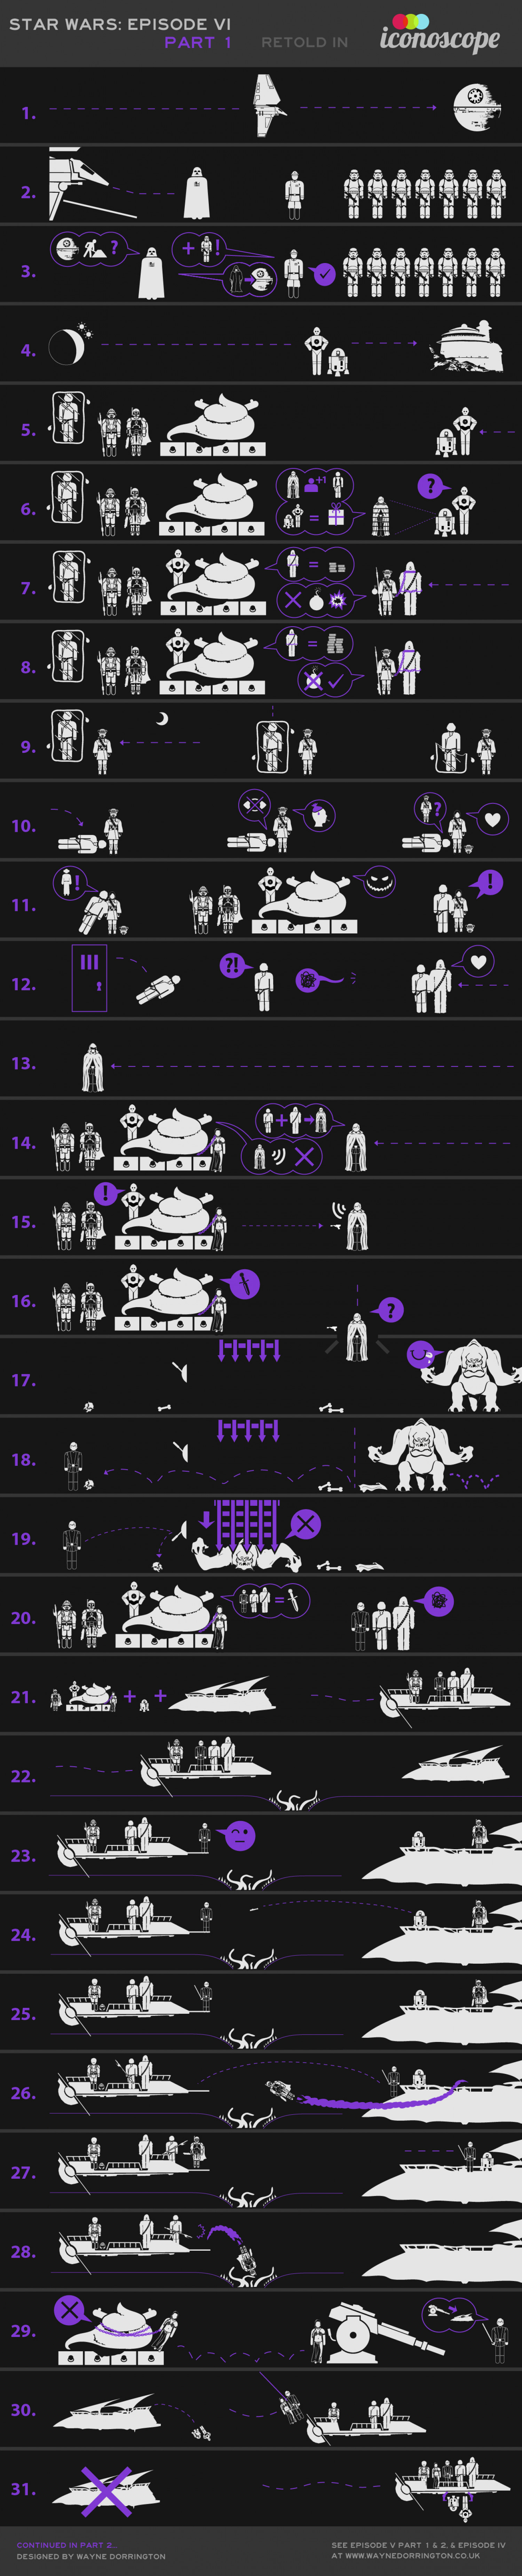 Star Wars Episode VI Retold in Icons Infographic